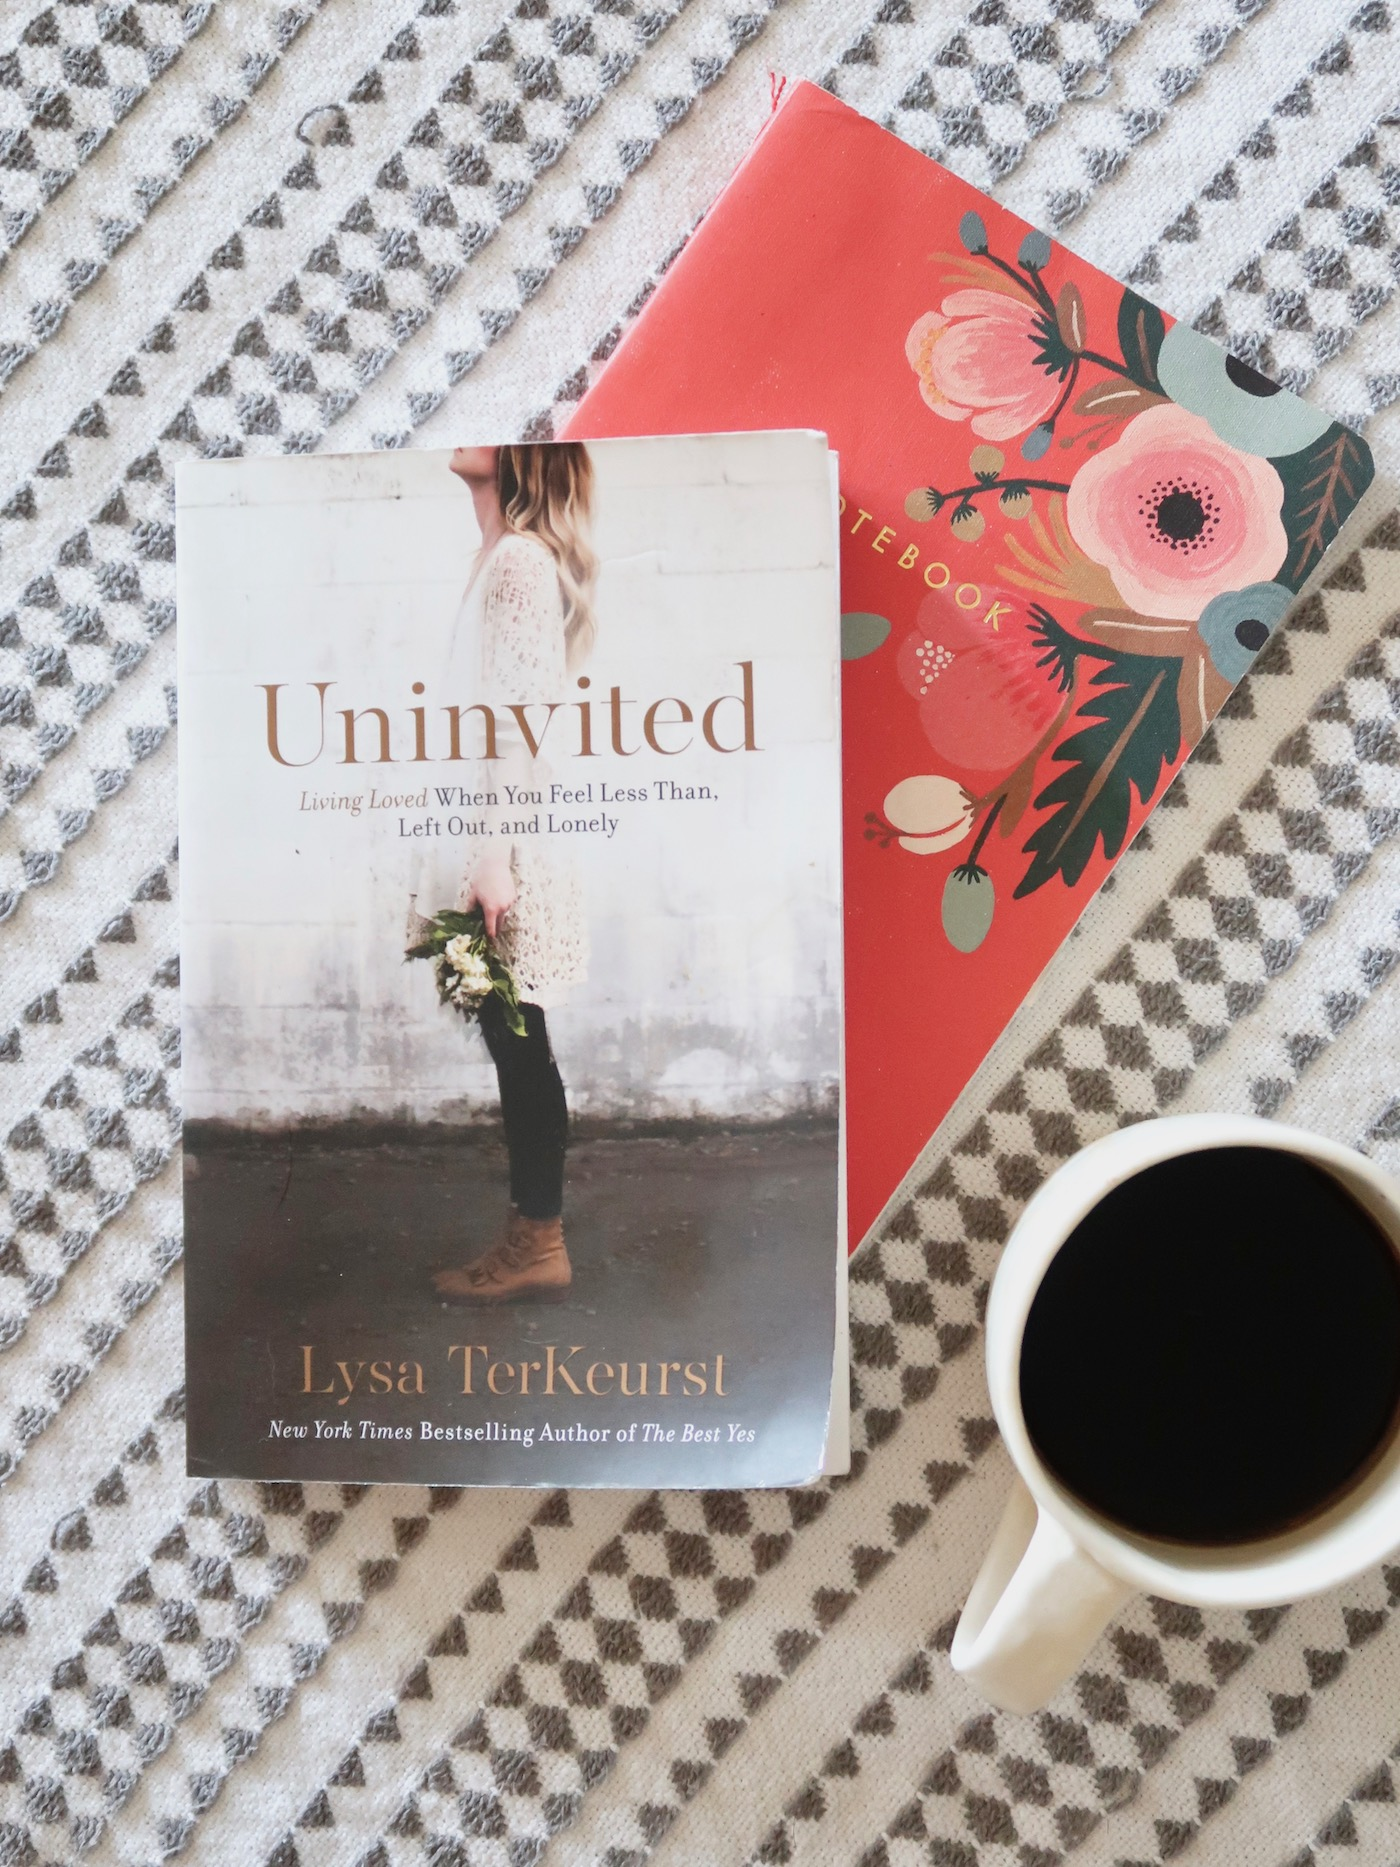 Uninvited by Lysa Terkeurst. Highly recommend! // www.thehiveblog.com